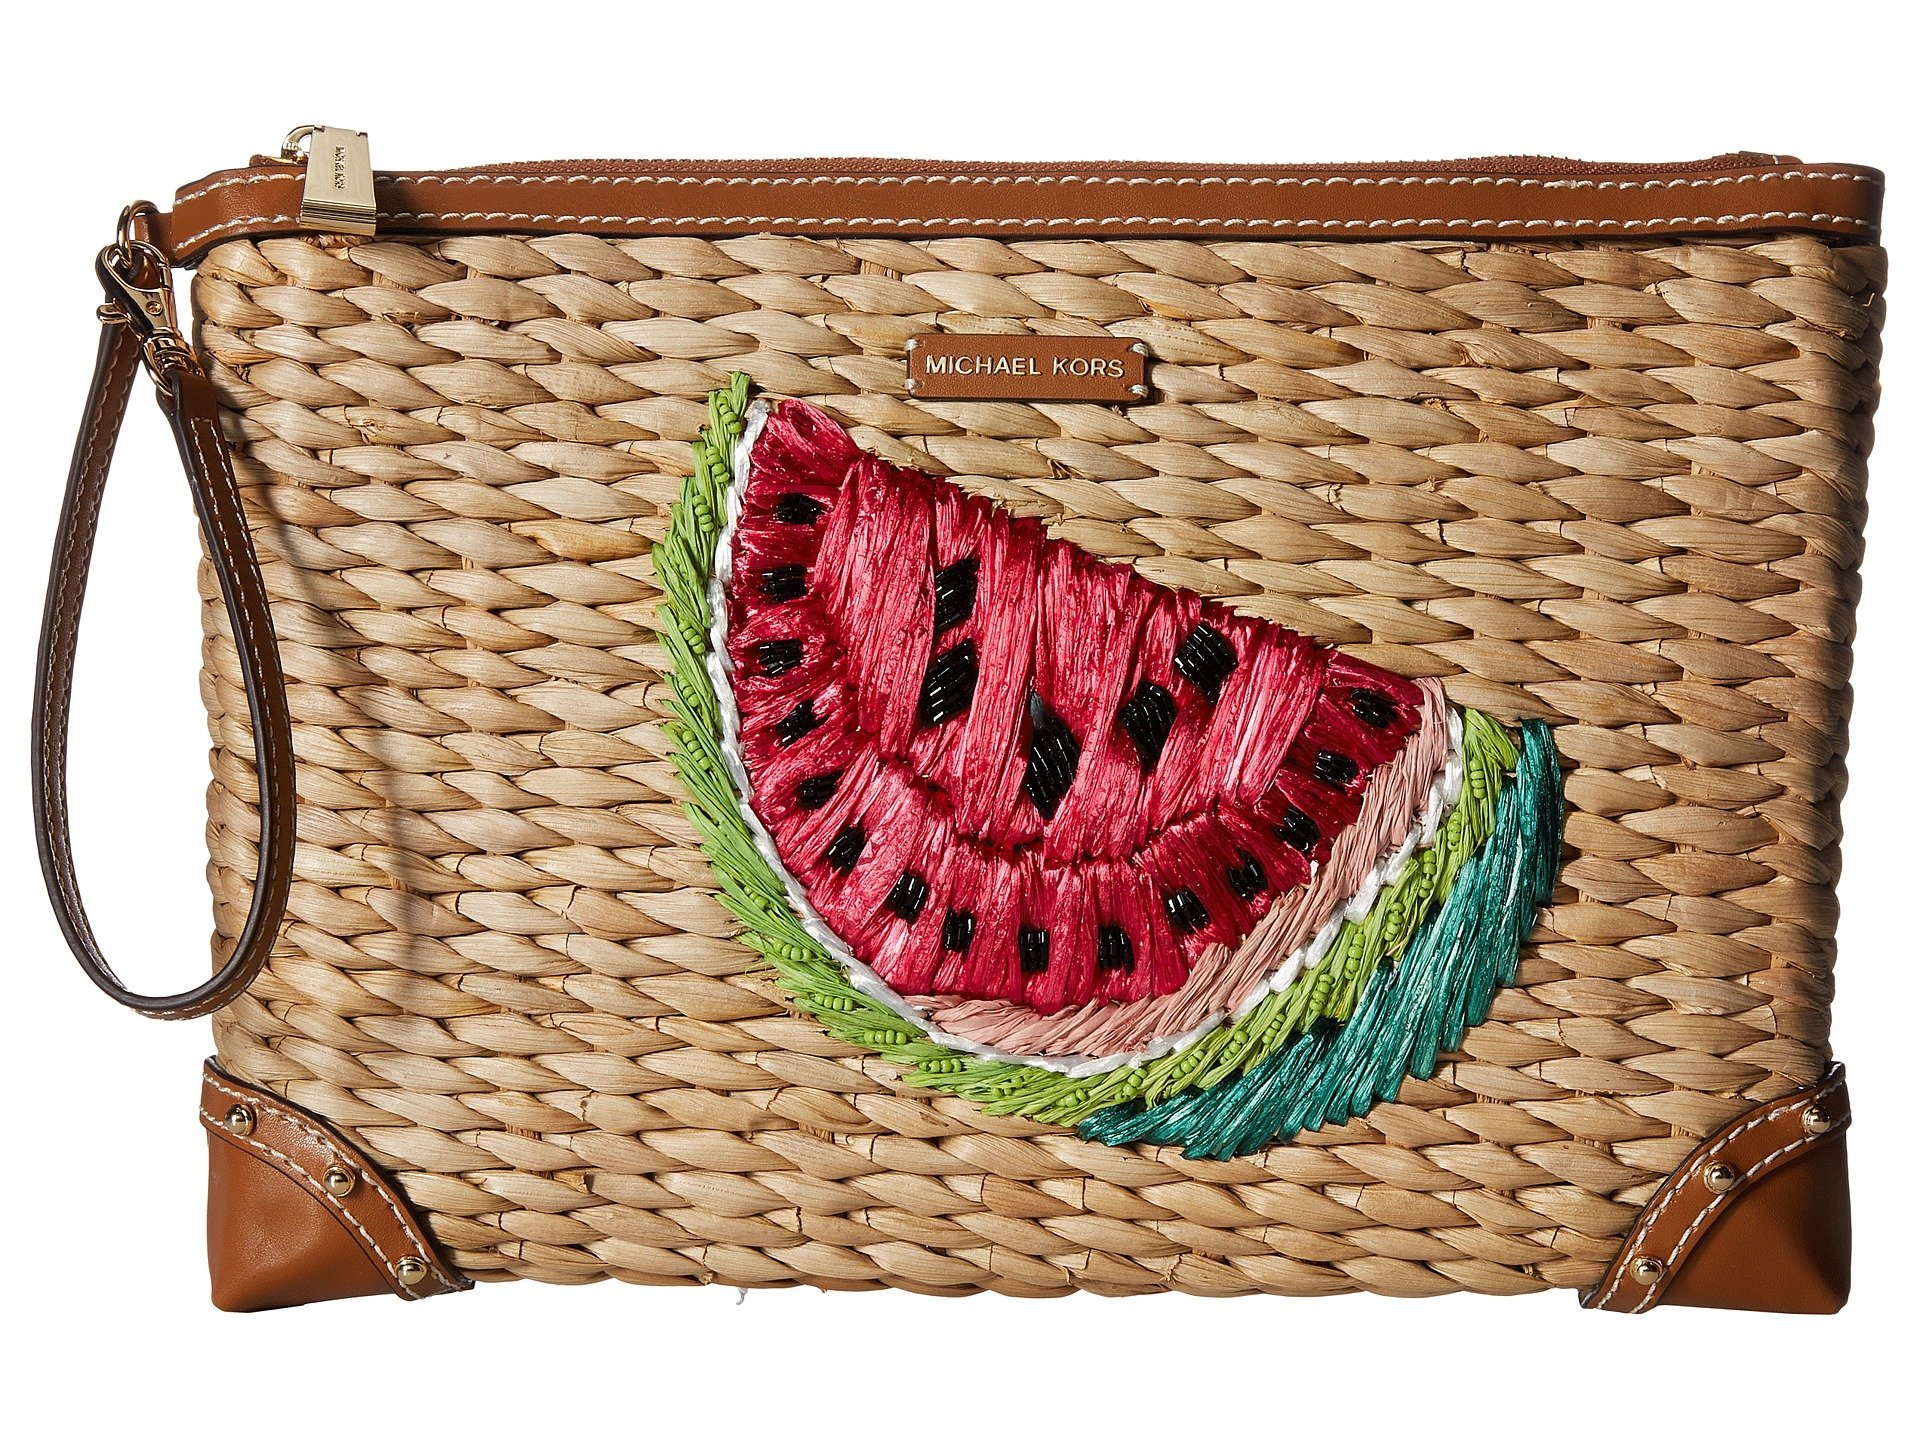 Michael Kors Extra Large Woven Malibu Watermelon Zip Clutch, Natural/Ultra Pink